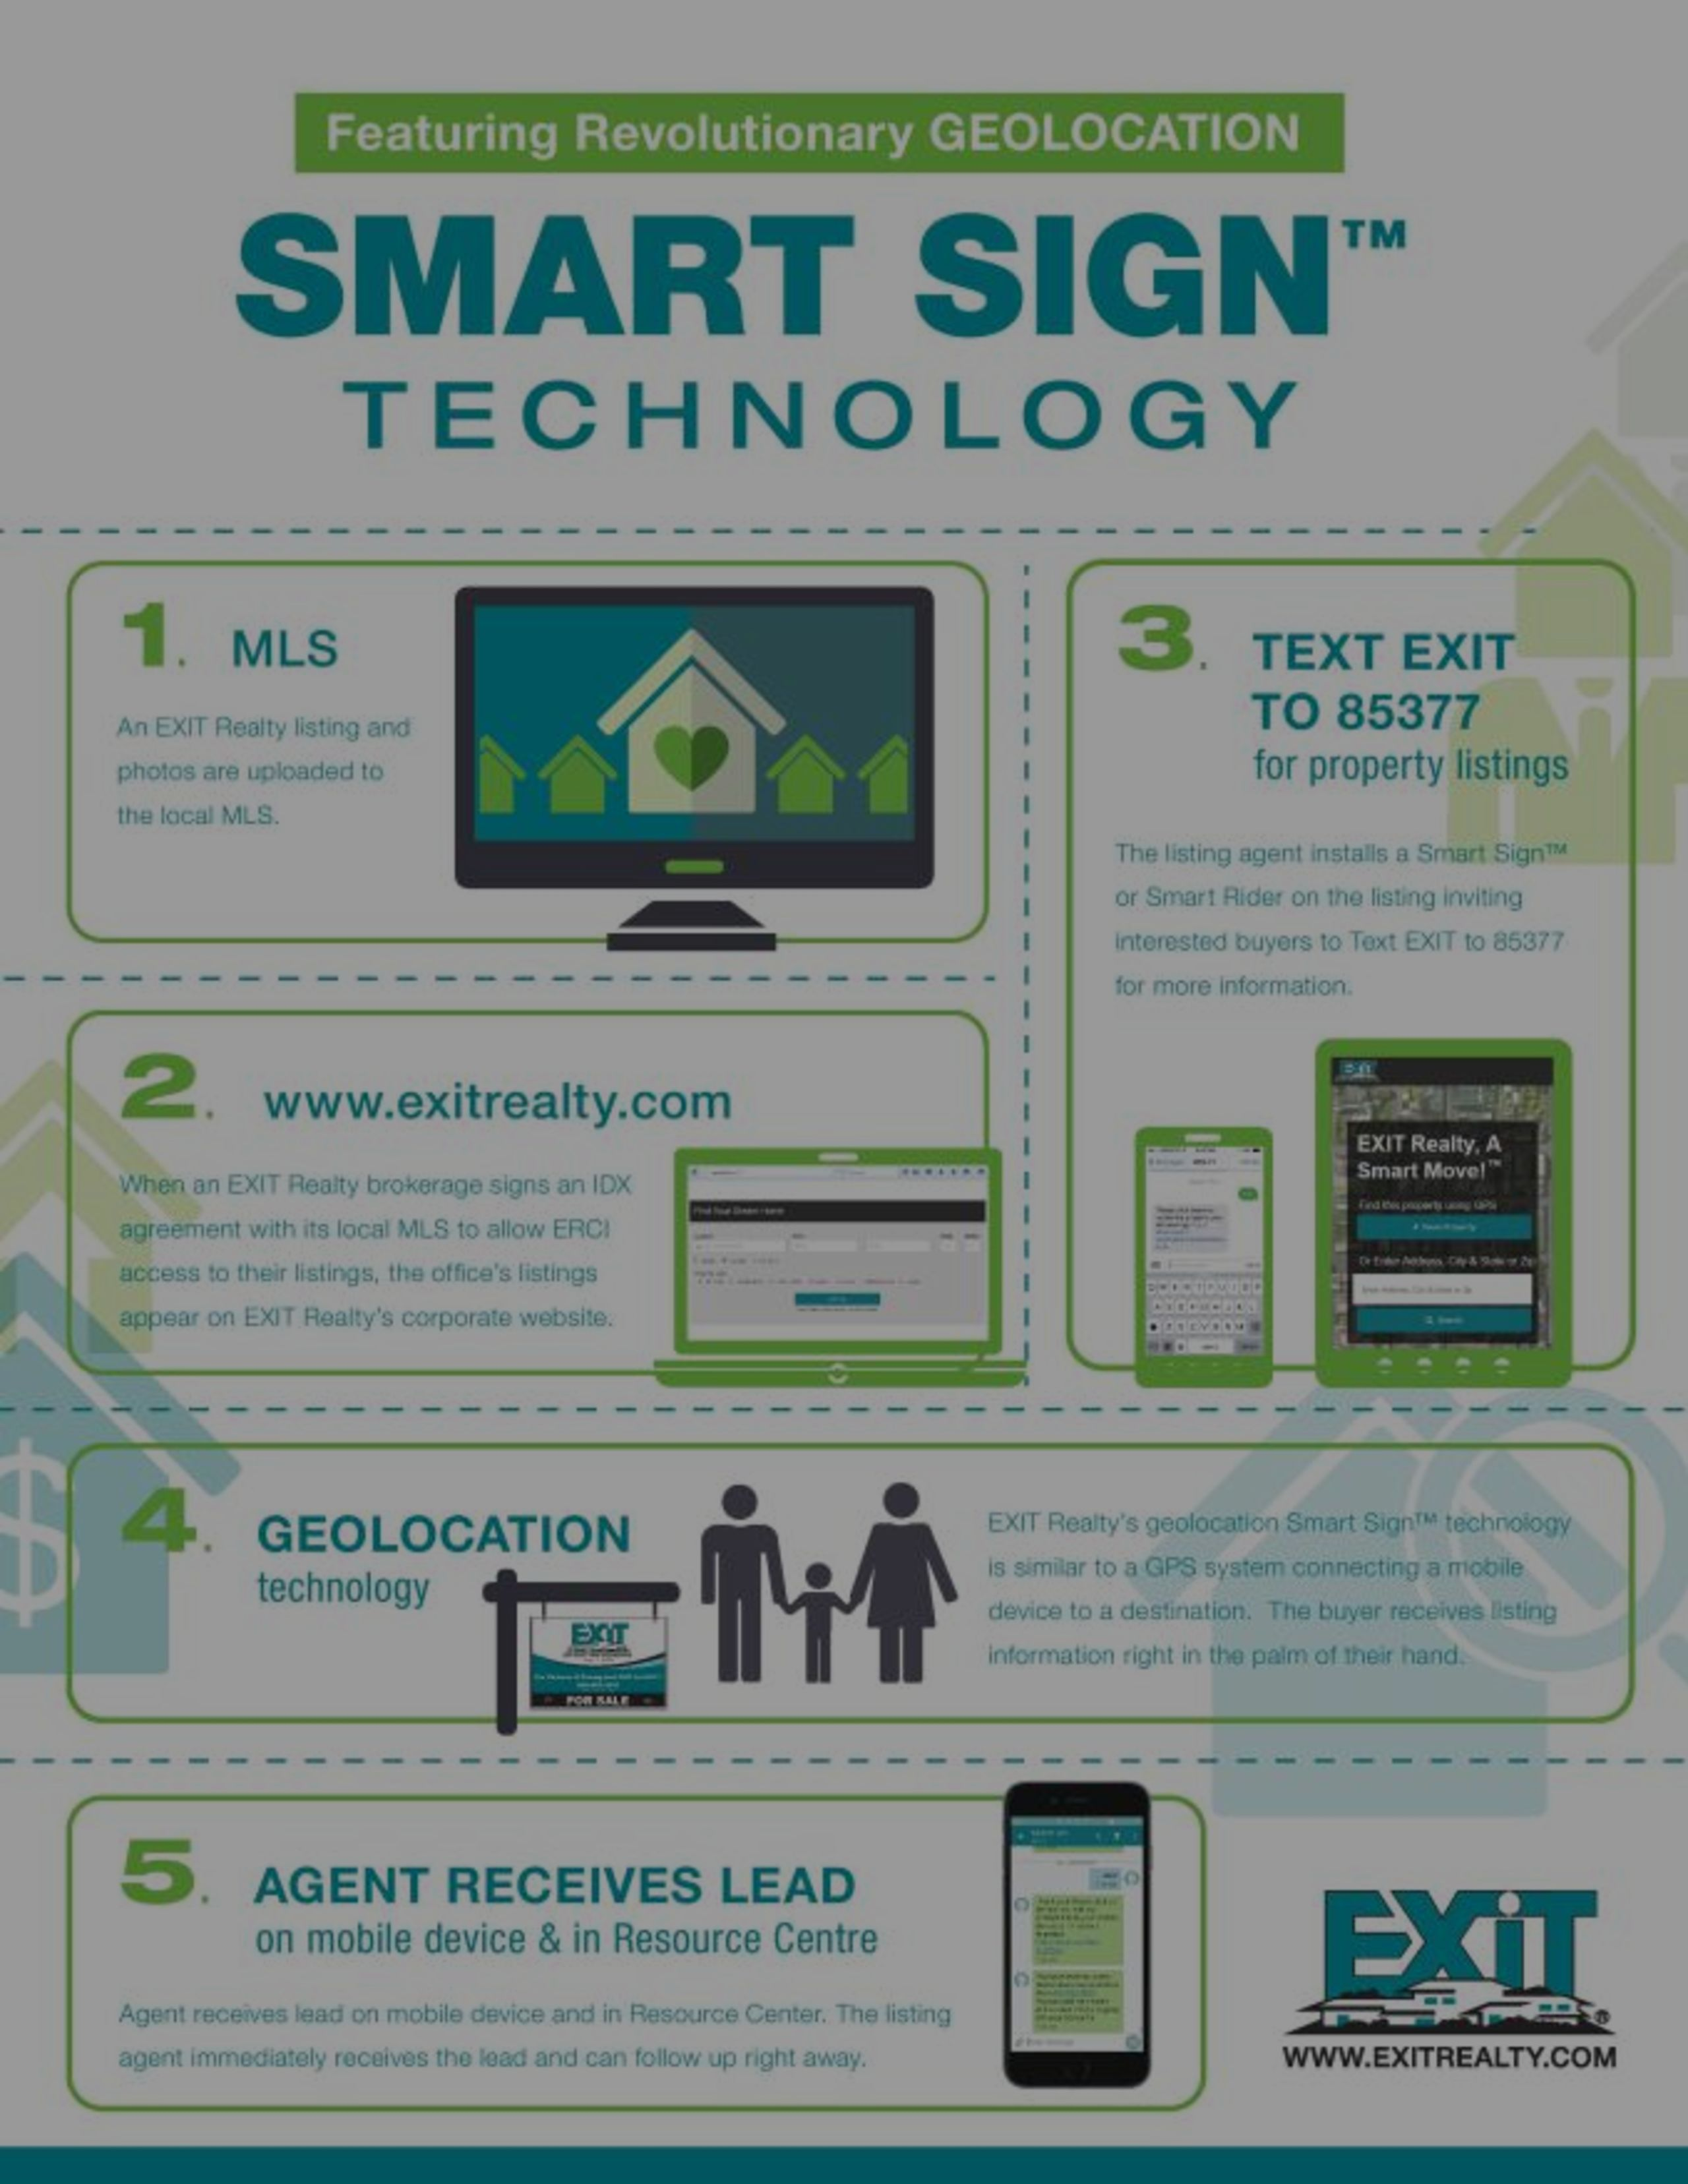 Smart Sign Technology For Home Sellers and Buyers